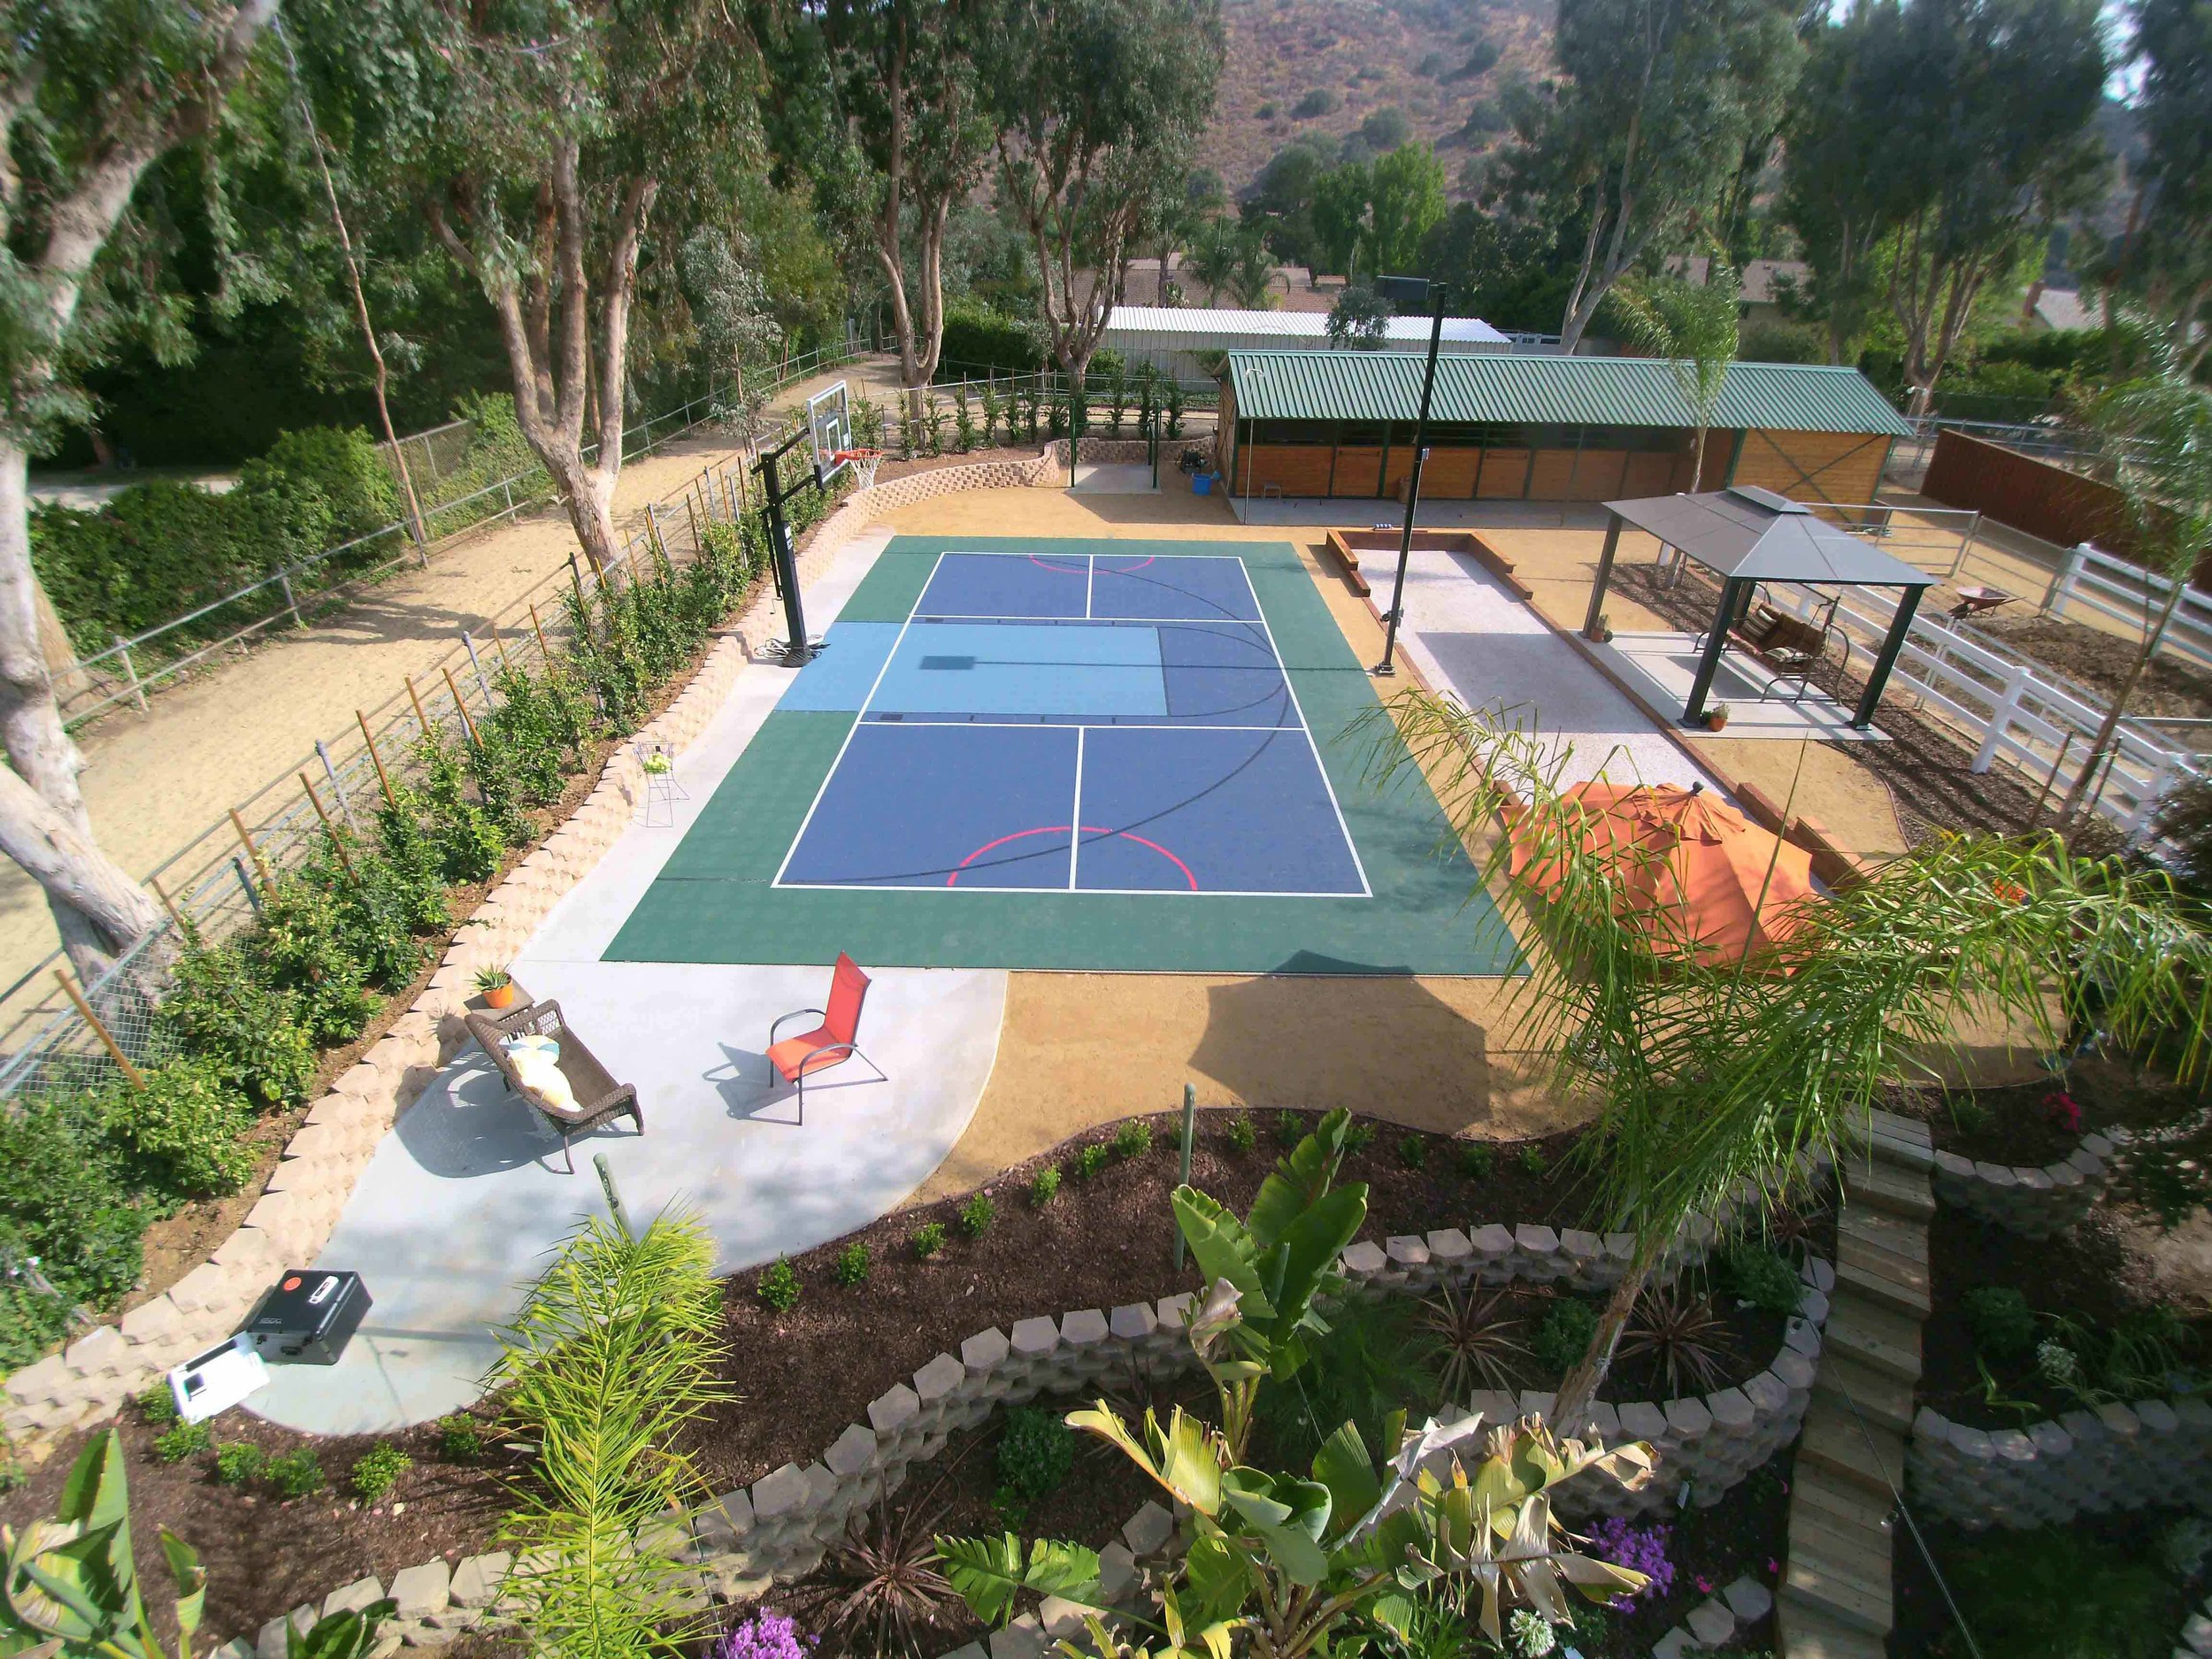 Drought tolerant with sport court